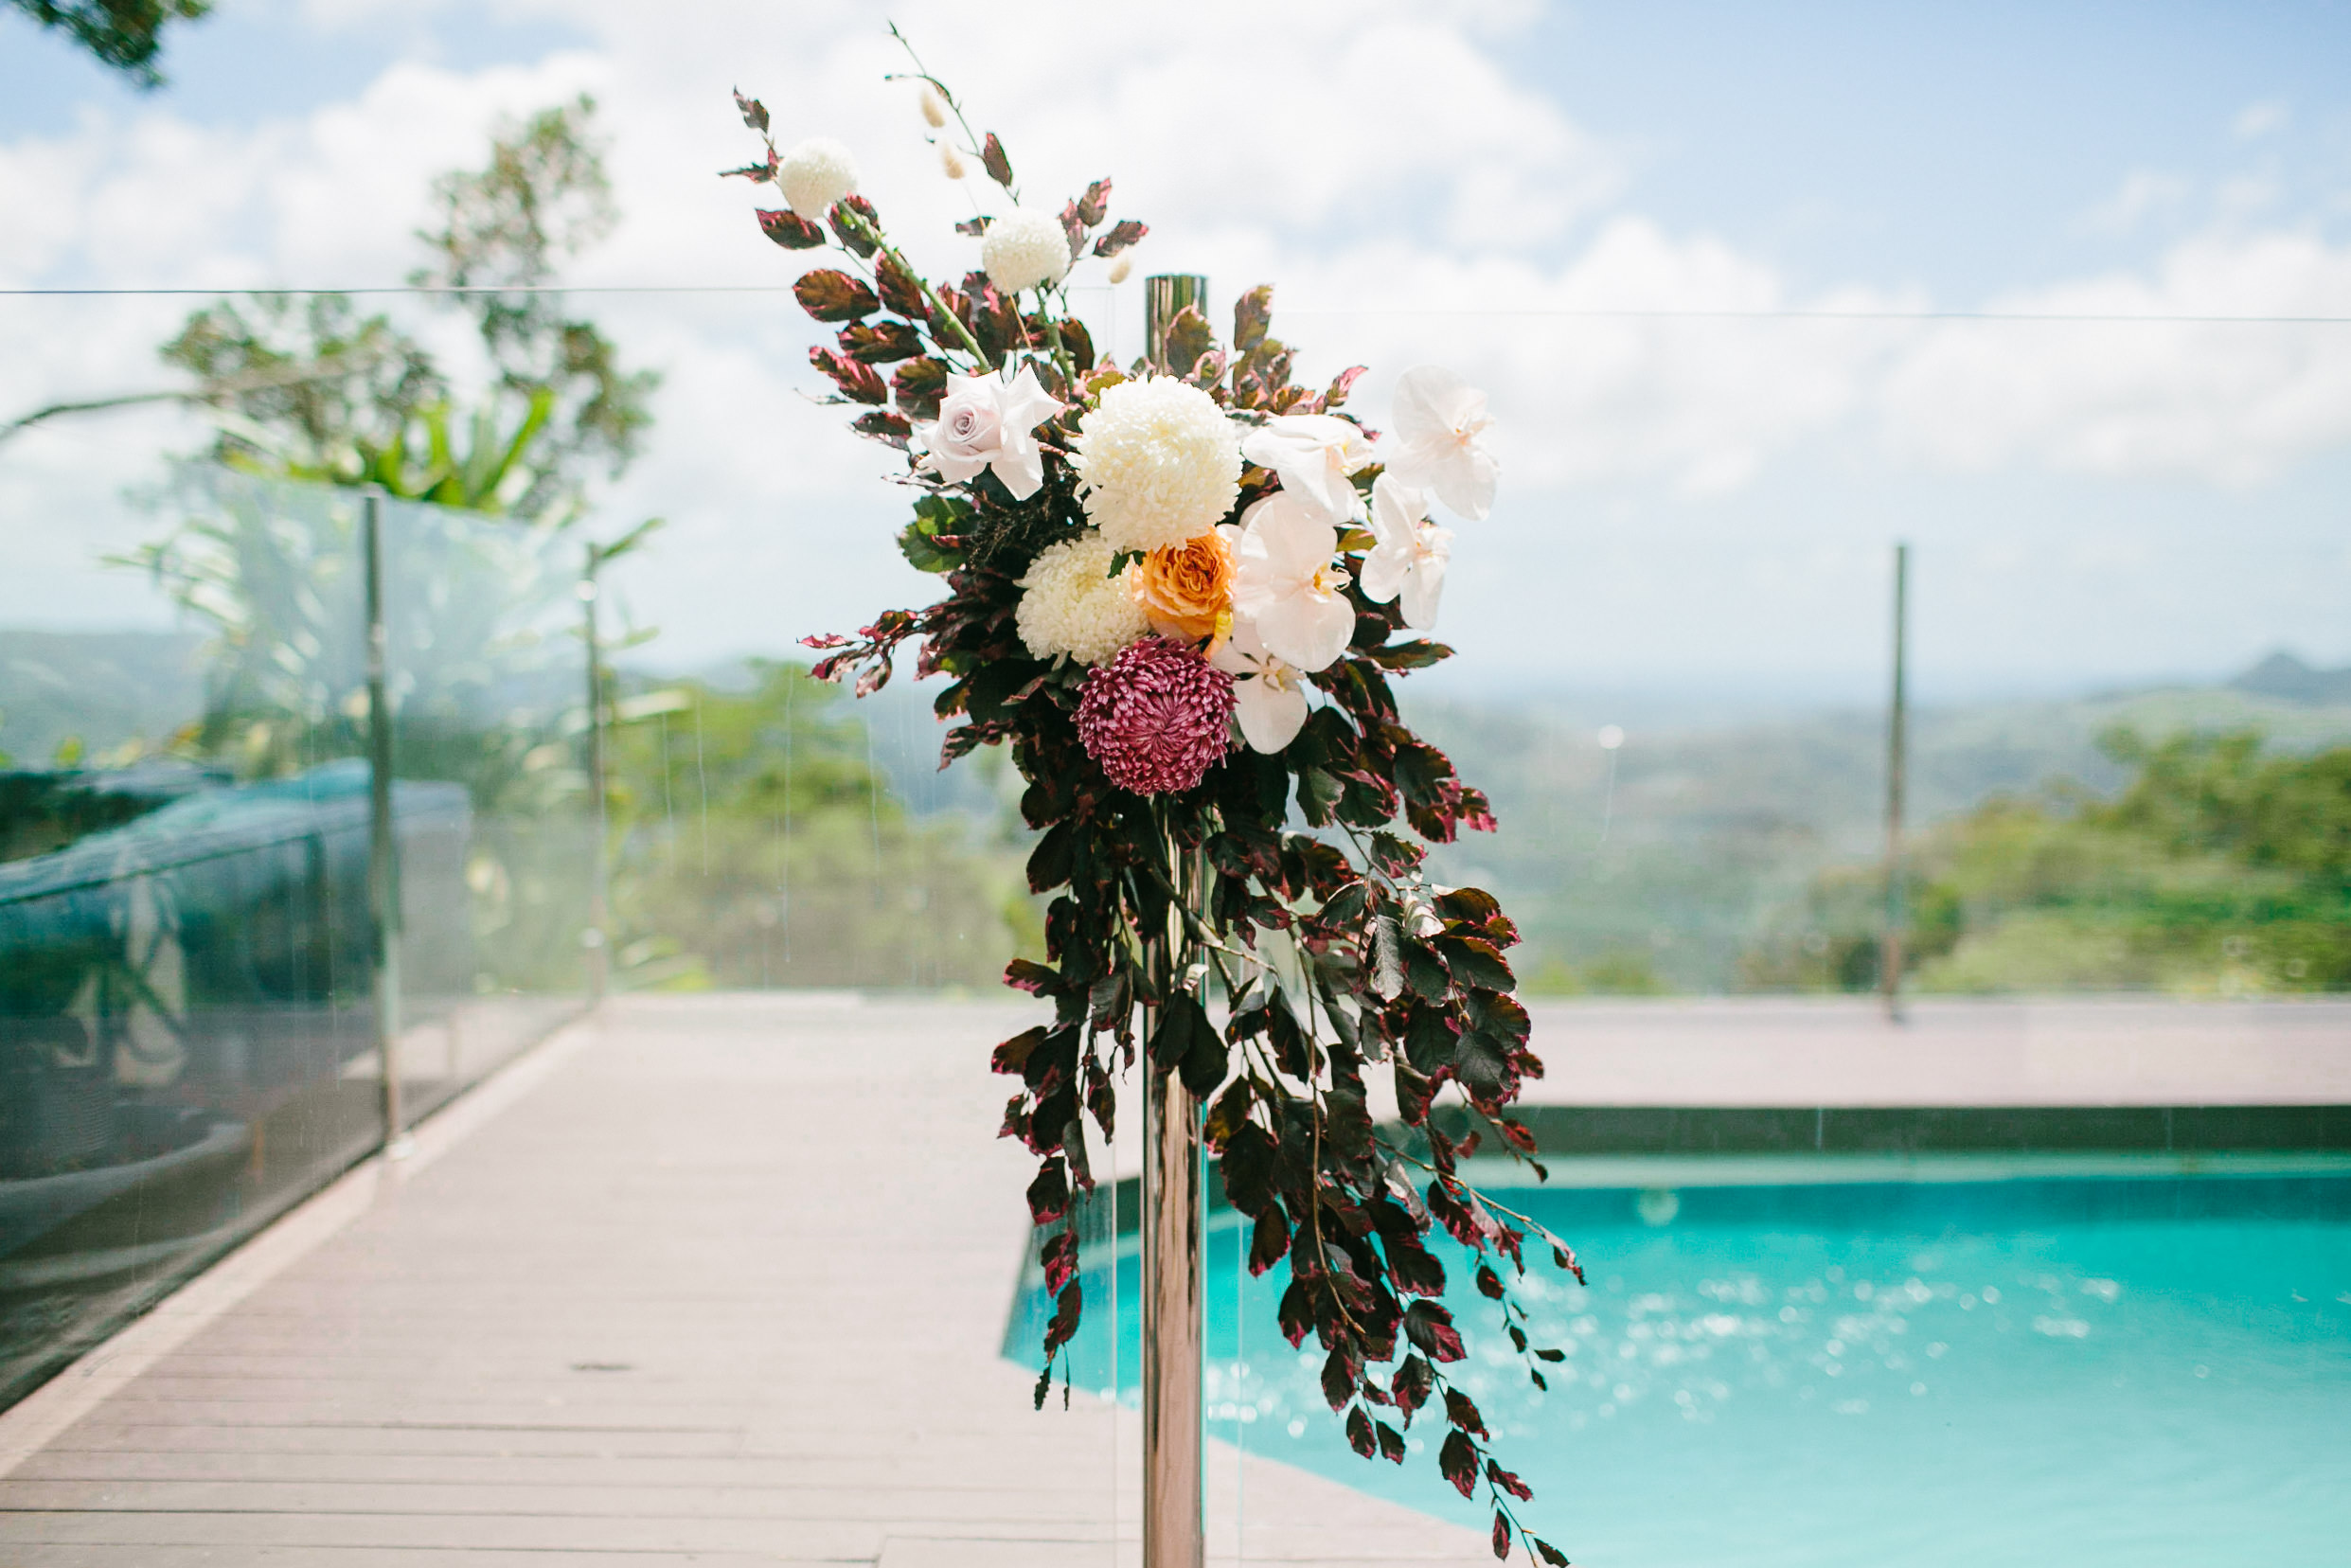 Bloodwood Botanica | Floral fence wedding flowers byron bay